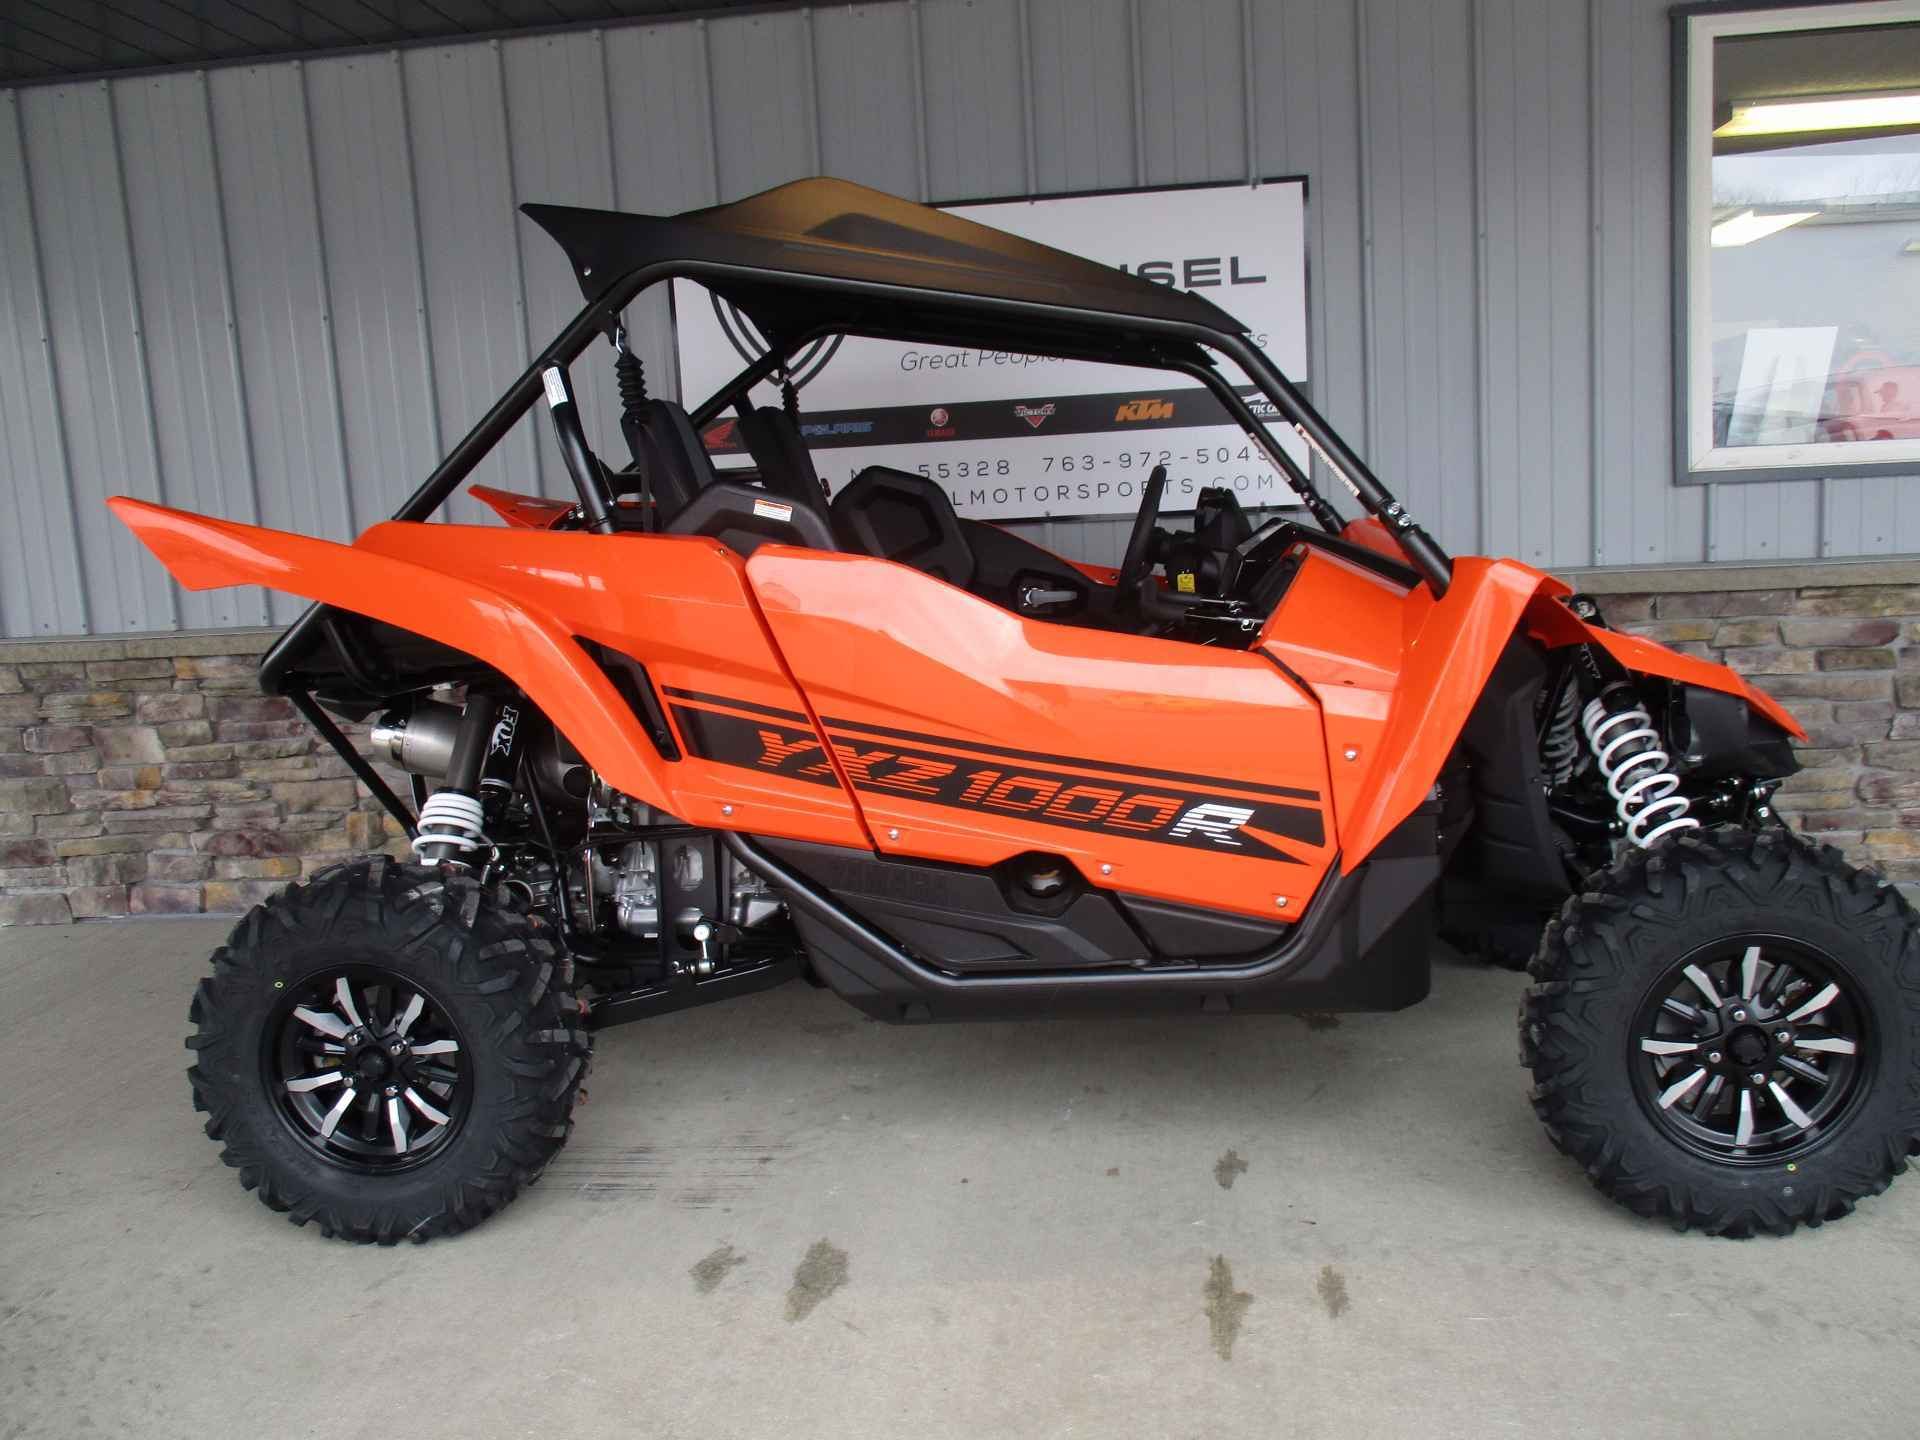 New 2016 yamaha yxz1000r atvs for sale in minnesota on atv for Yamaha eugene or